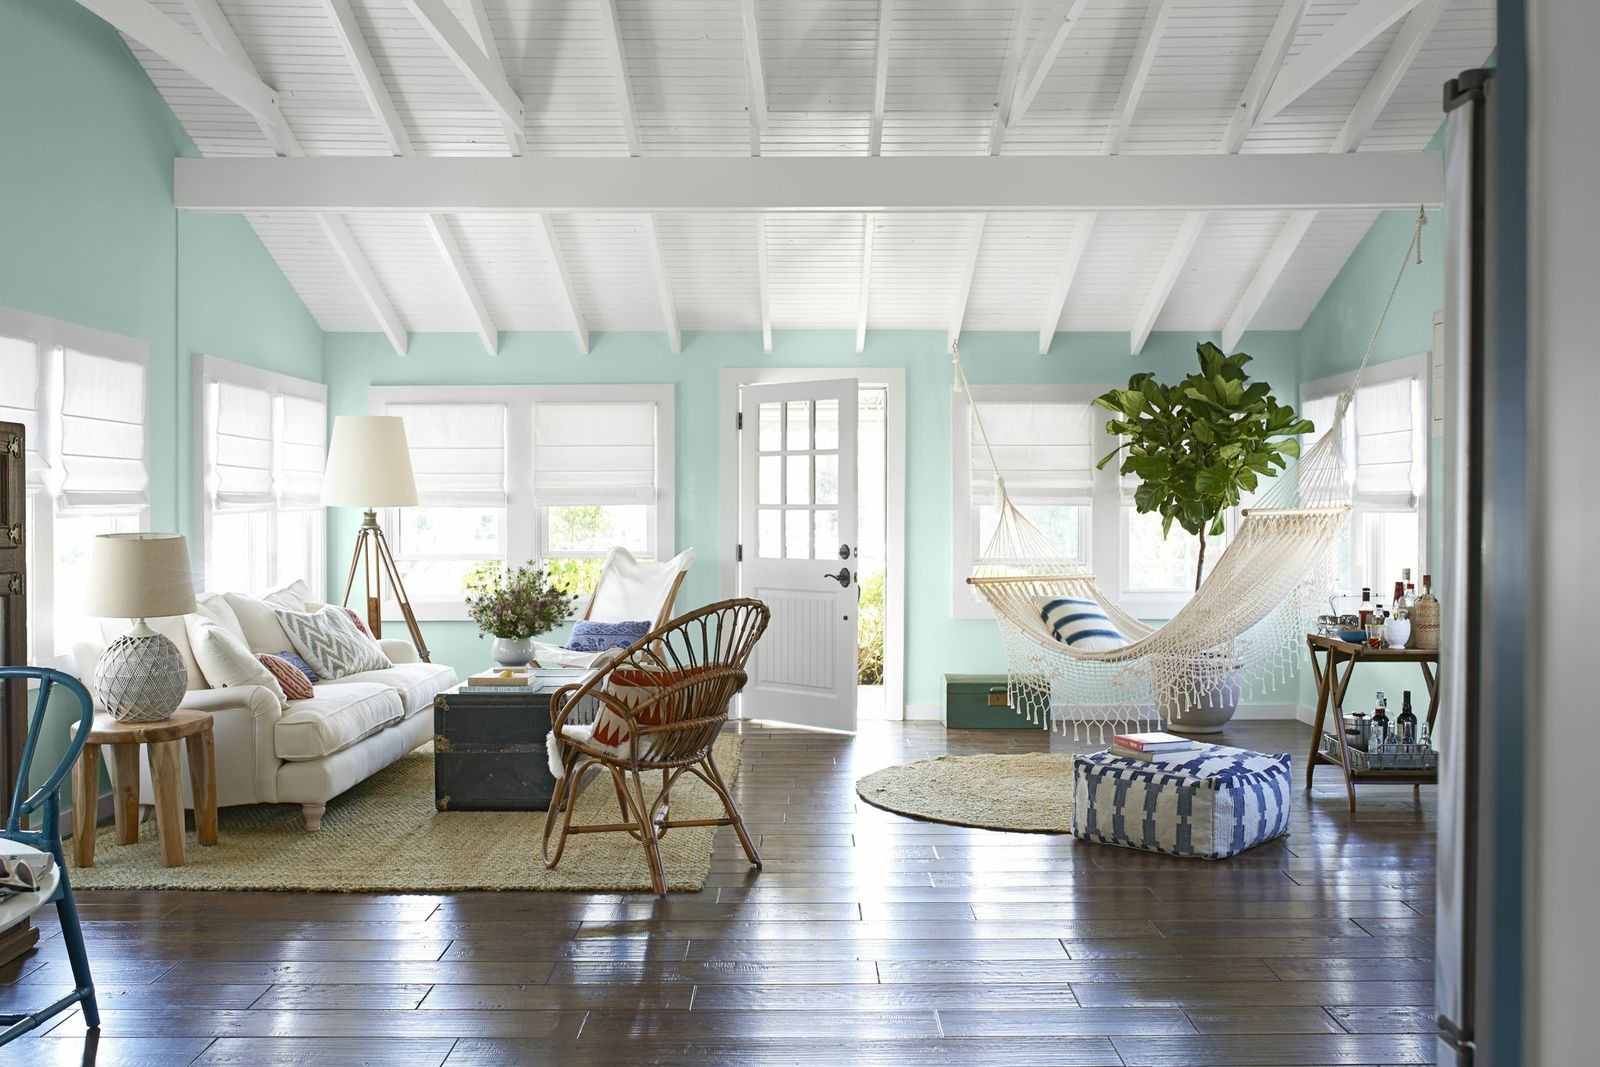 Country Living House of the Year 2013: A Breezy Point Bungalow ...